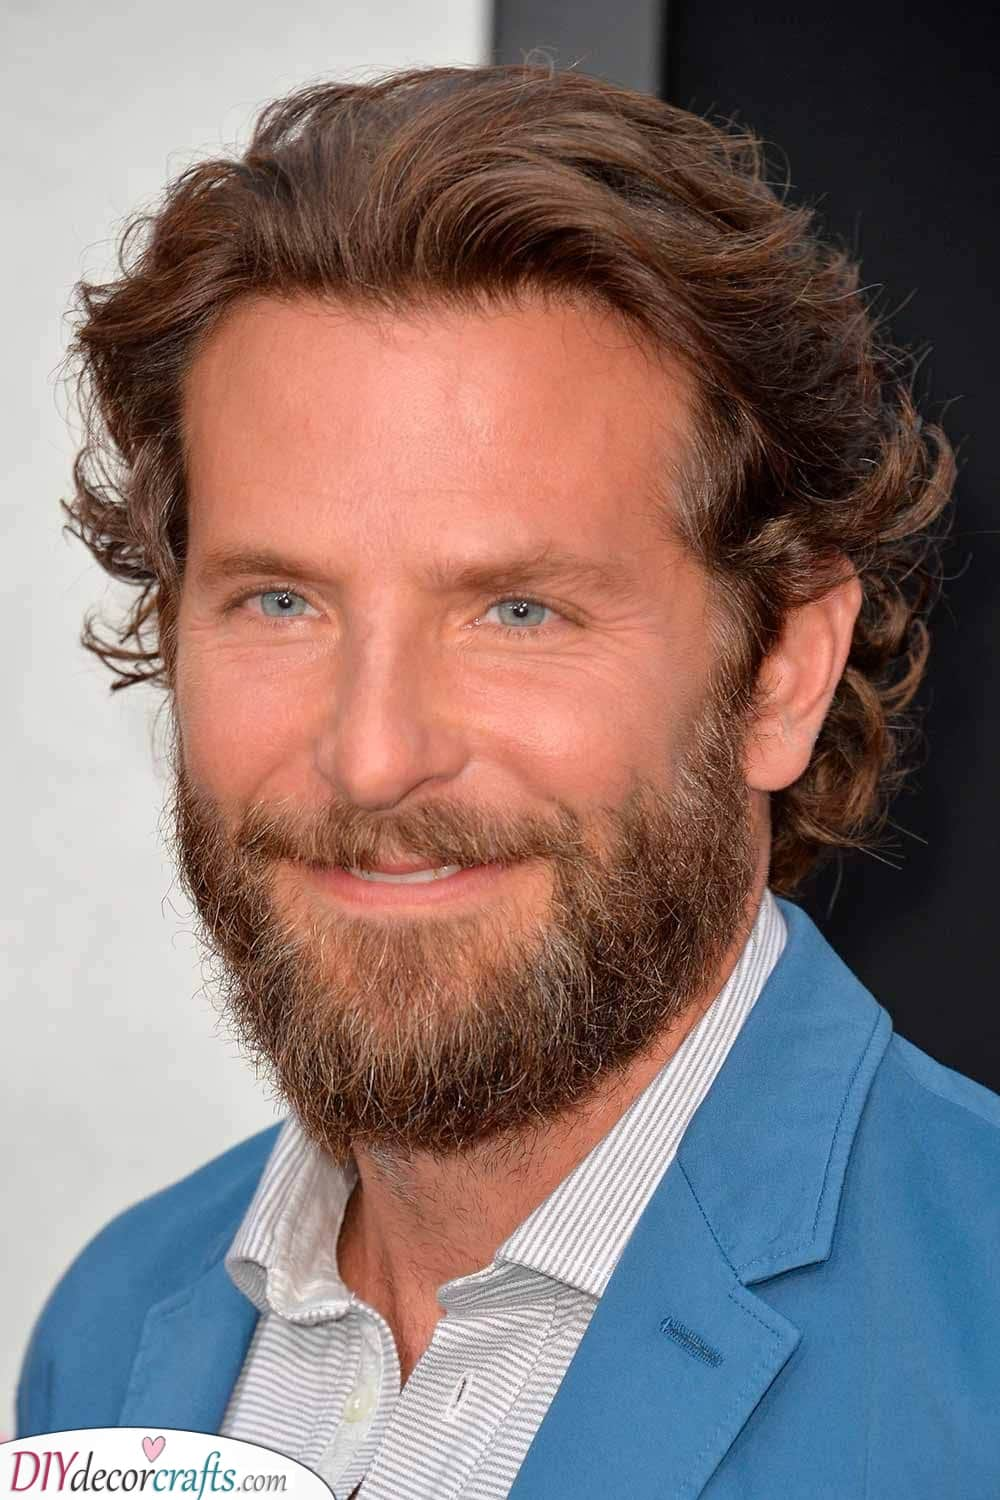 The Full Beard - Will Look Great with Wavy Hair